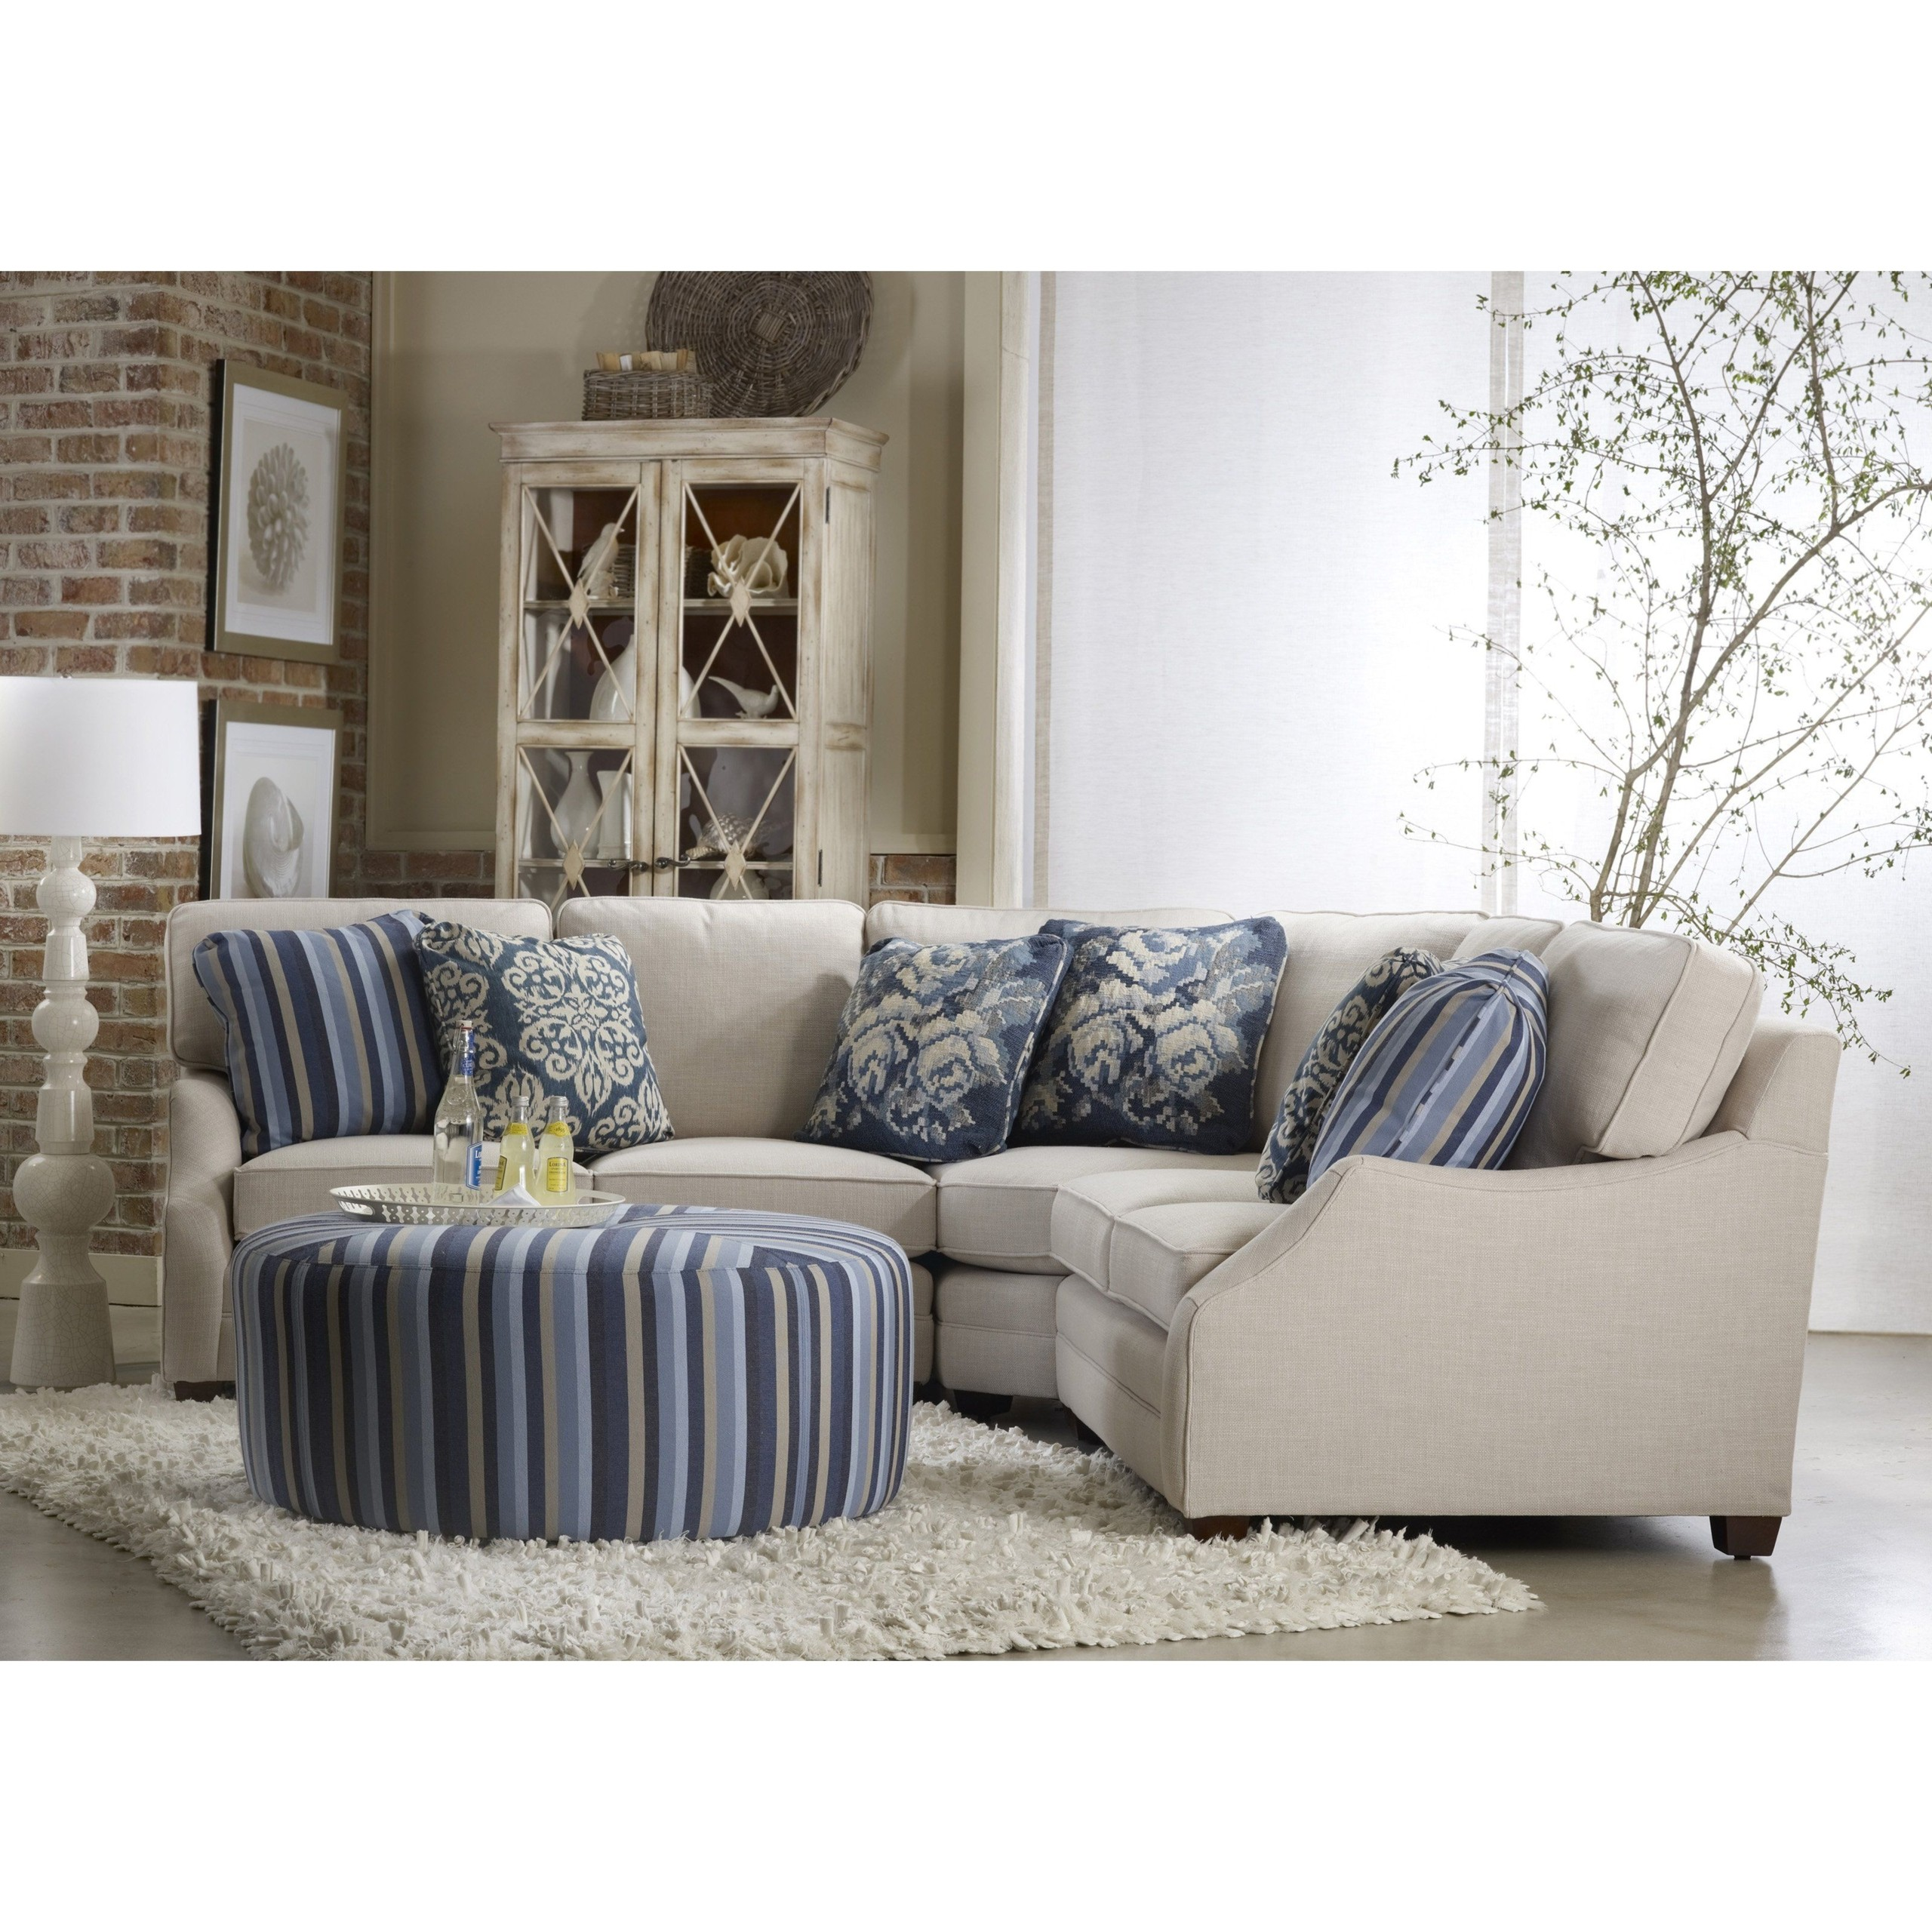 Small Sectional Couch. Small Sectional Sofa With Recliner Couch O